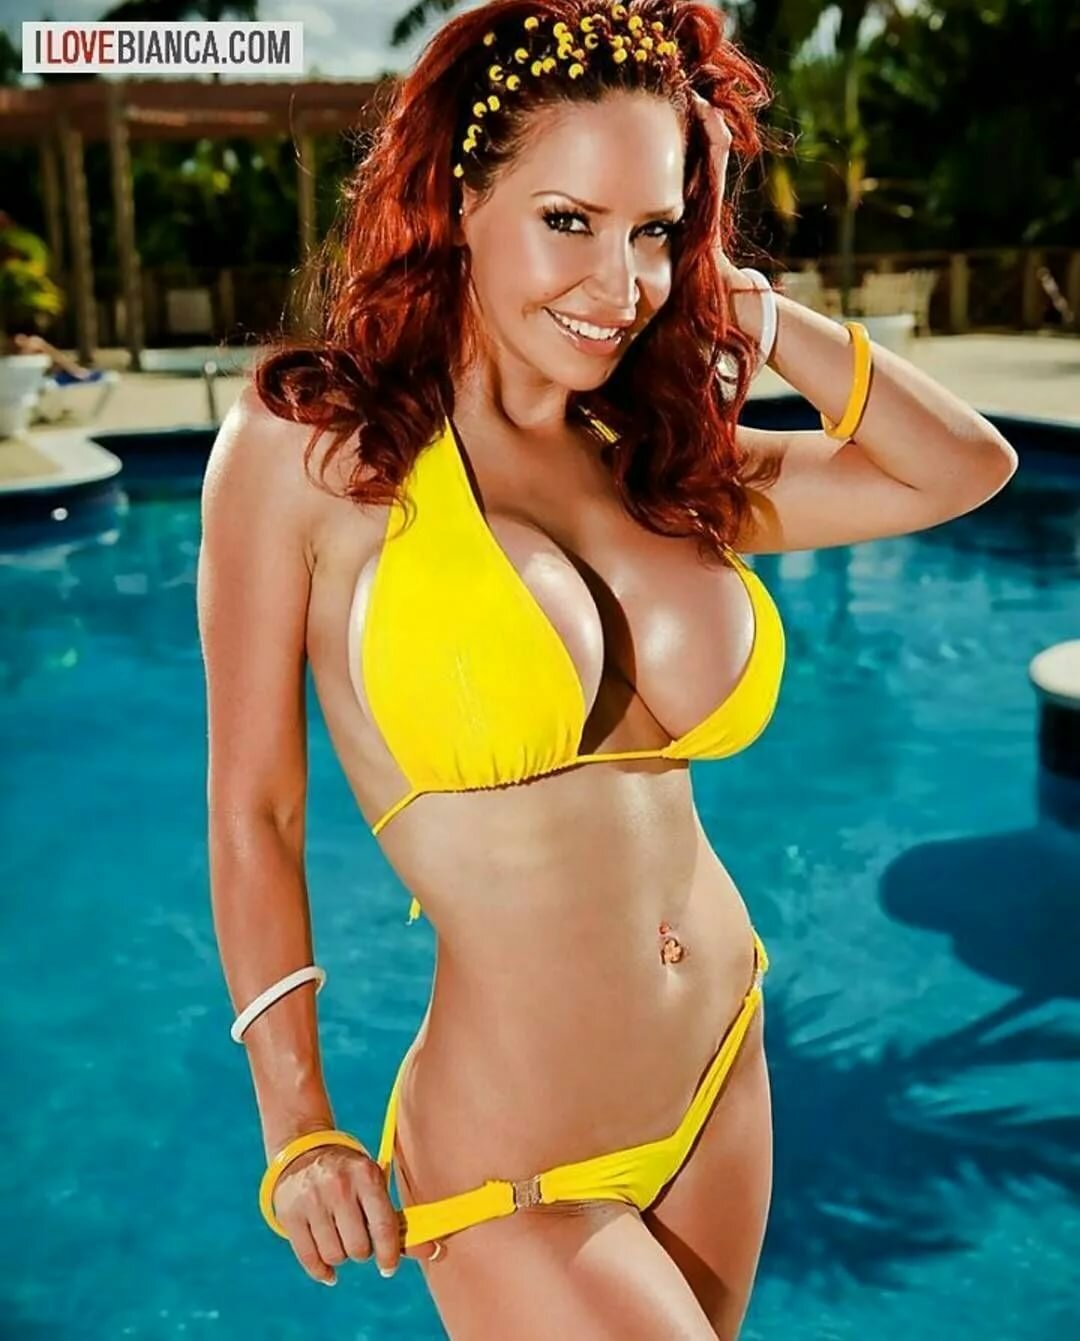 Bianca beauchamp in yellow bikini